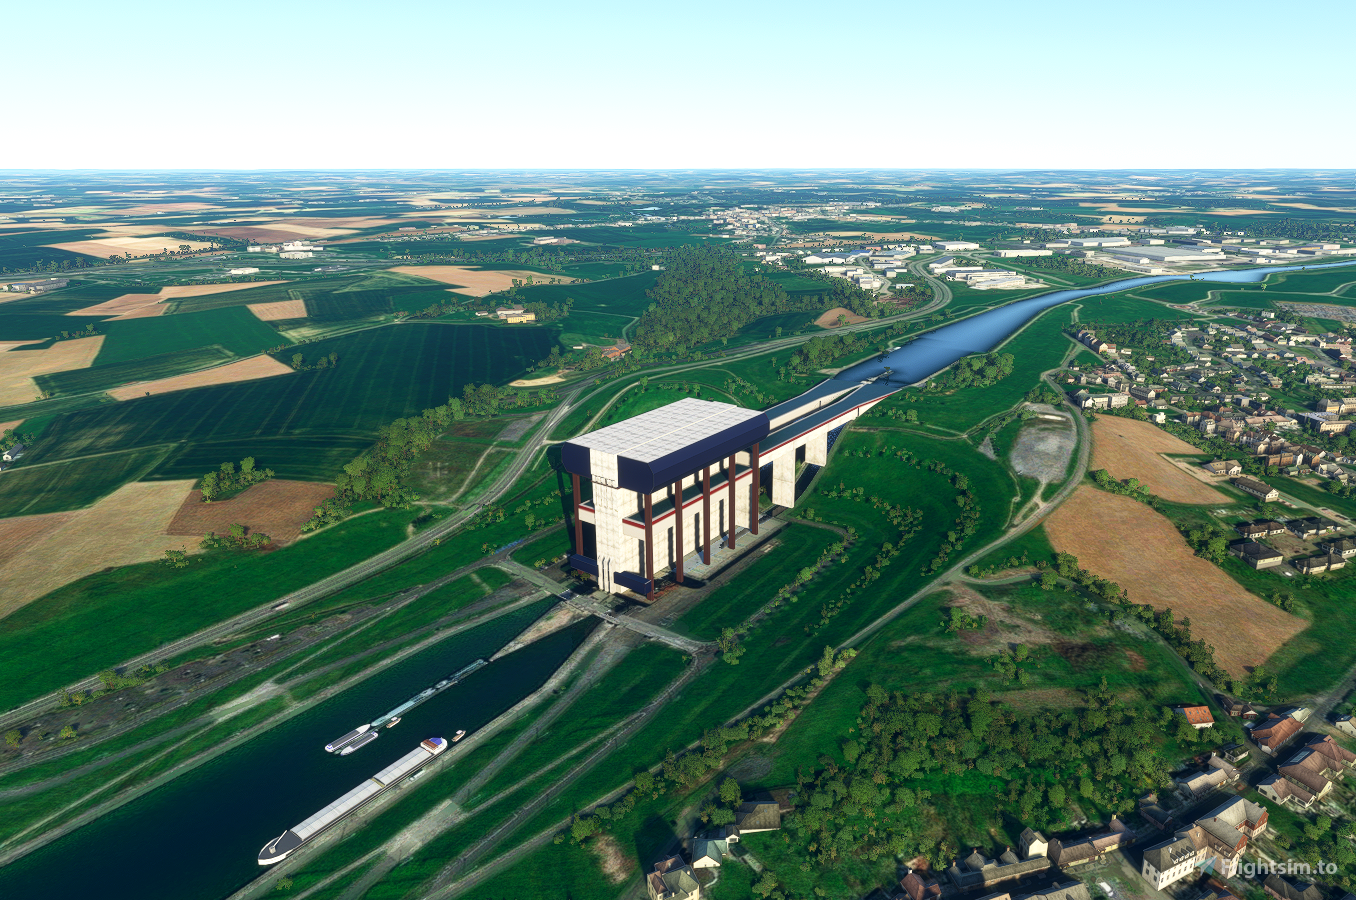 Ascenseur funiculaire de Strépy-Thieu Flight Simulator 2020